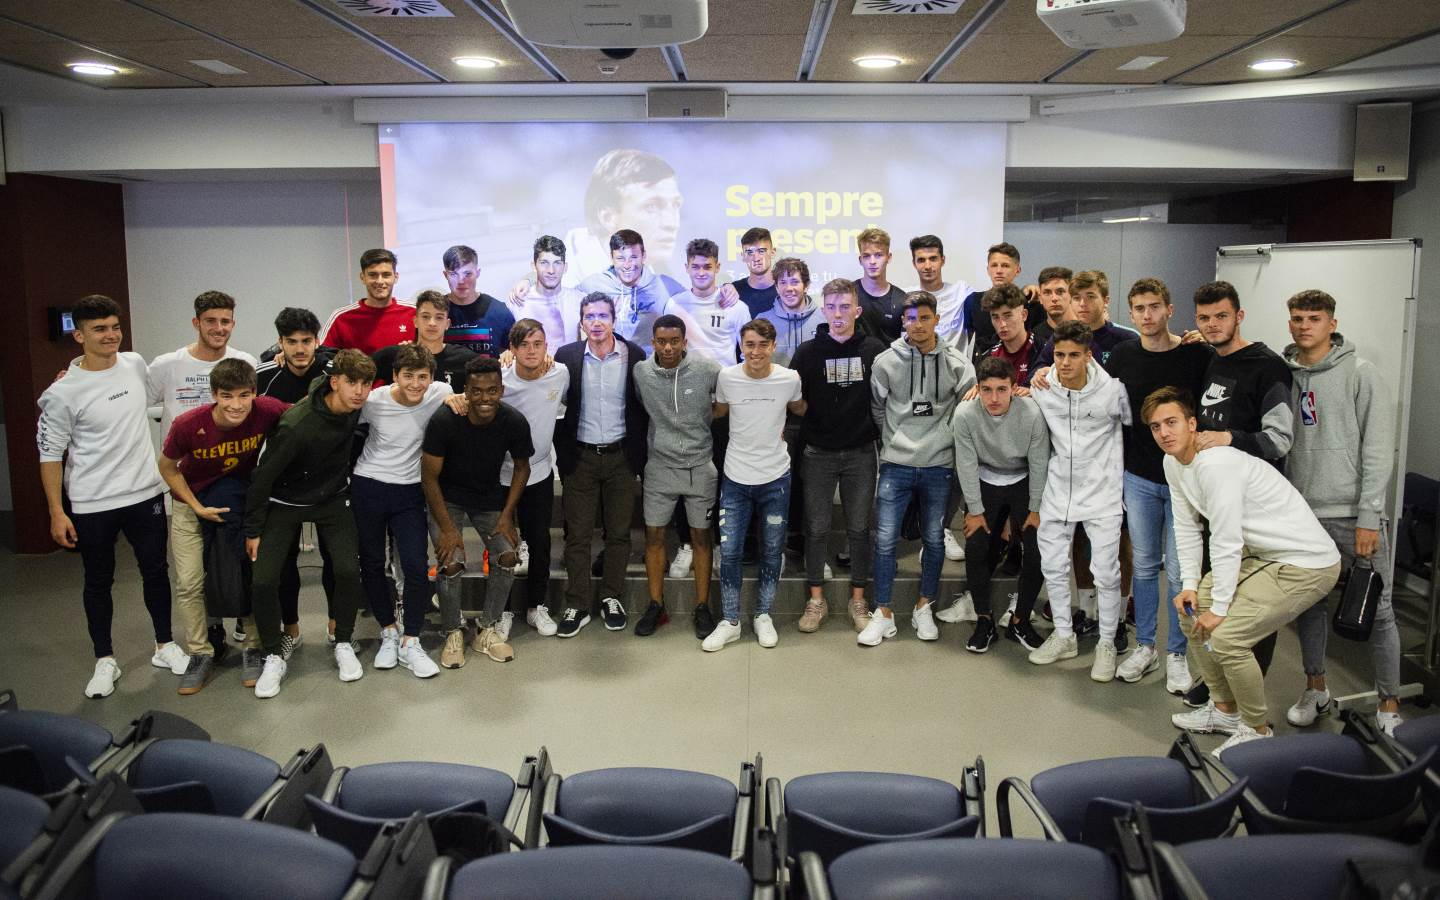 La Masia youth teams learn about Johan Cruyff